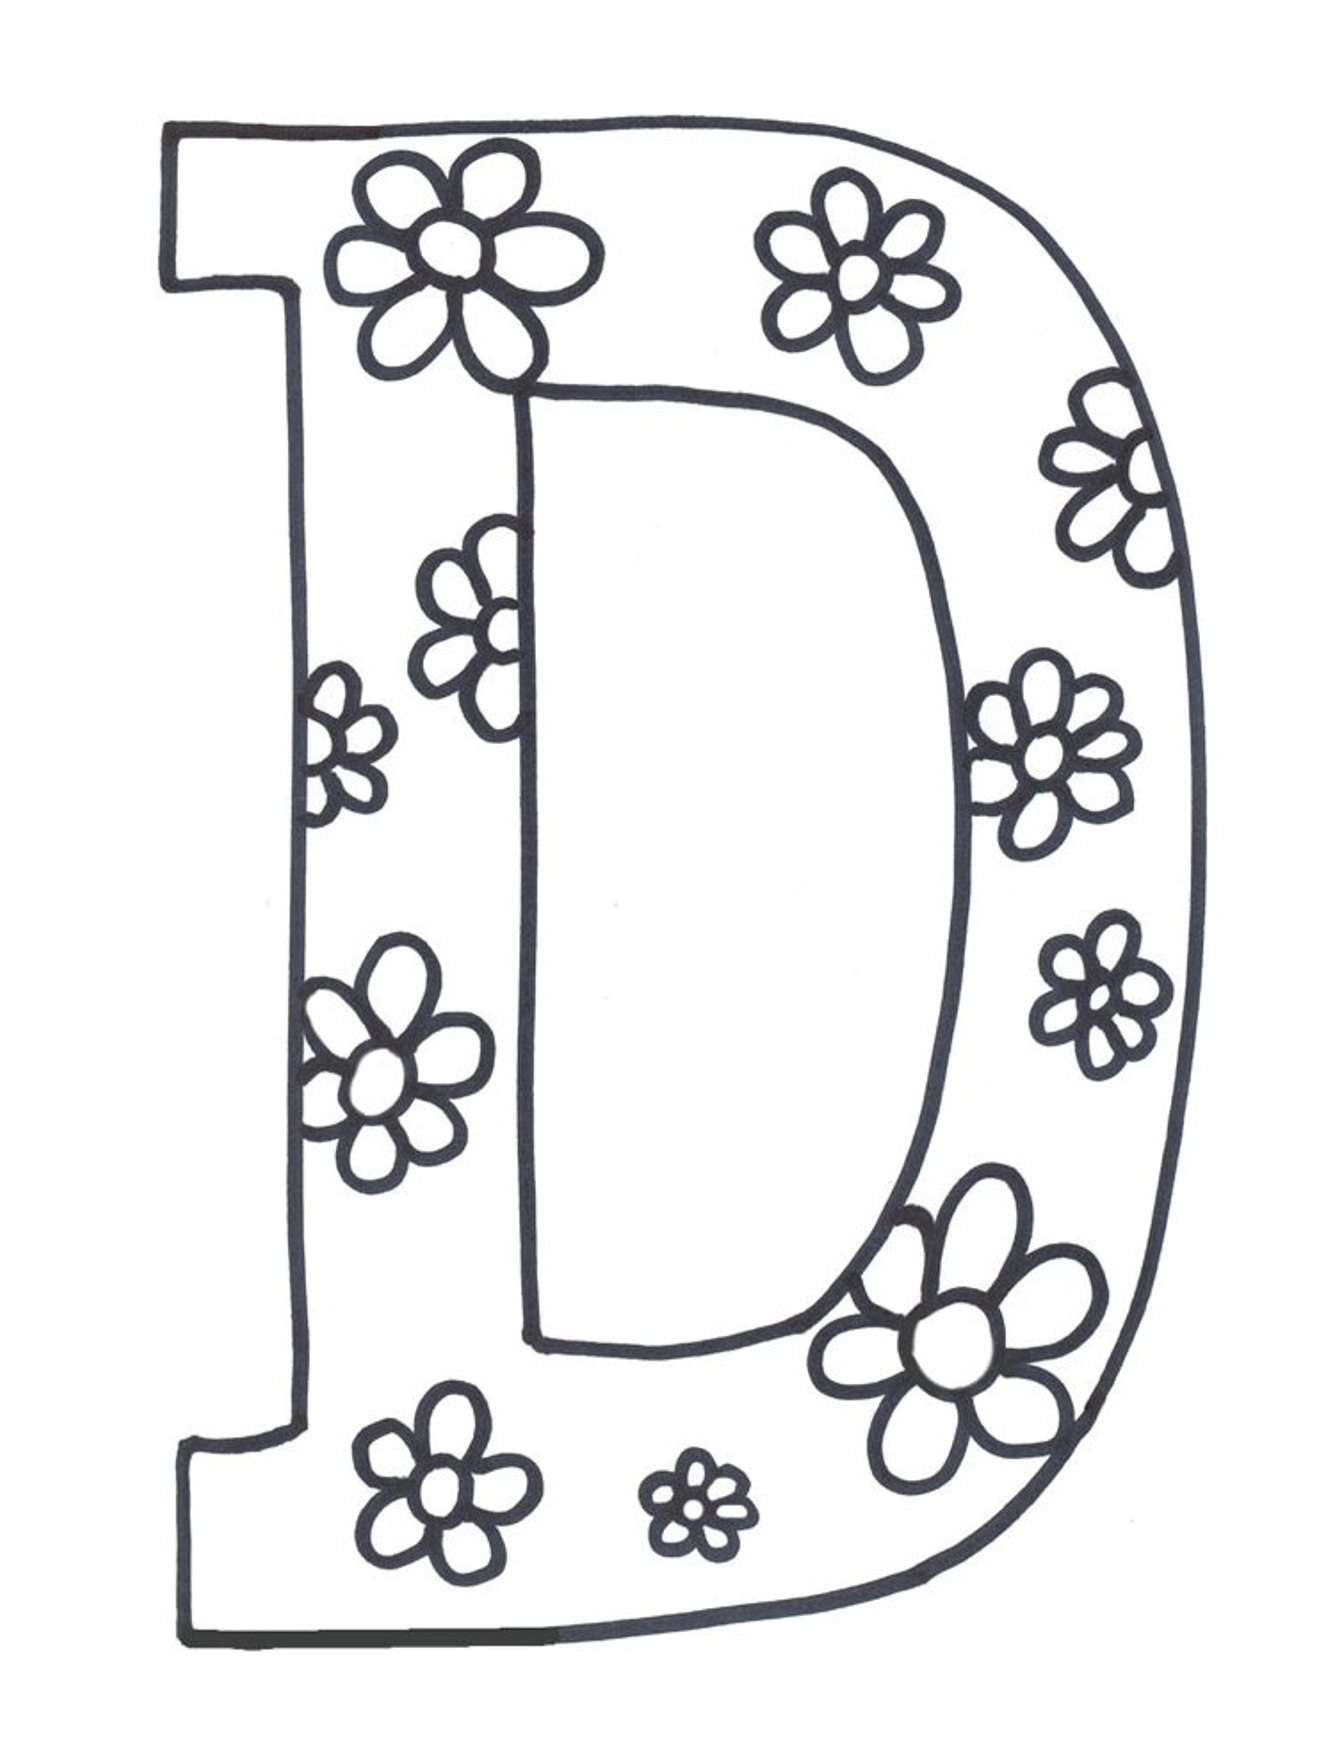 Letter D Drawing At Getdrawings